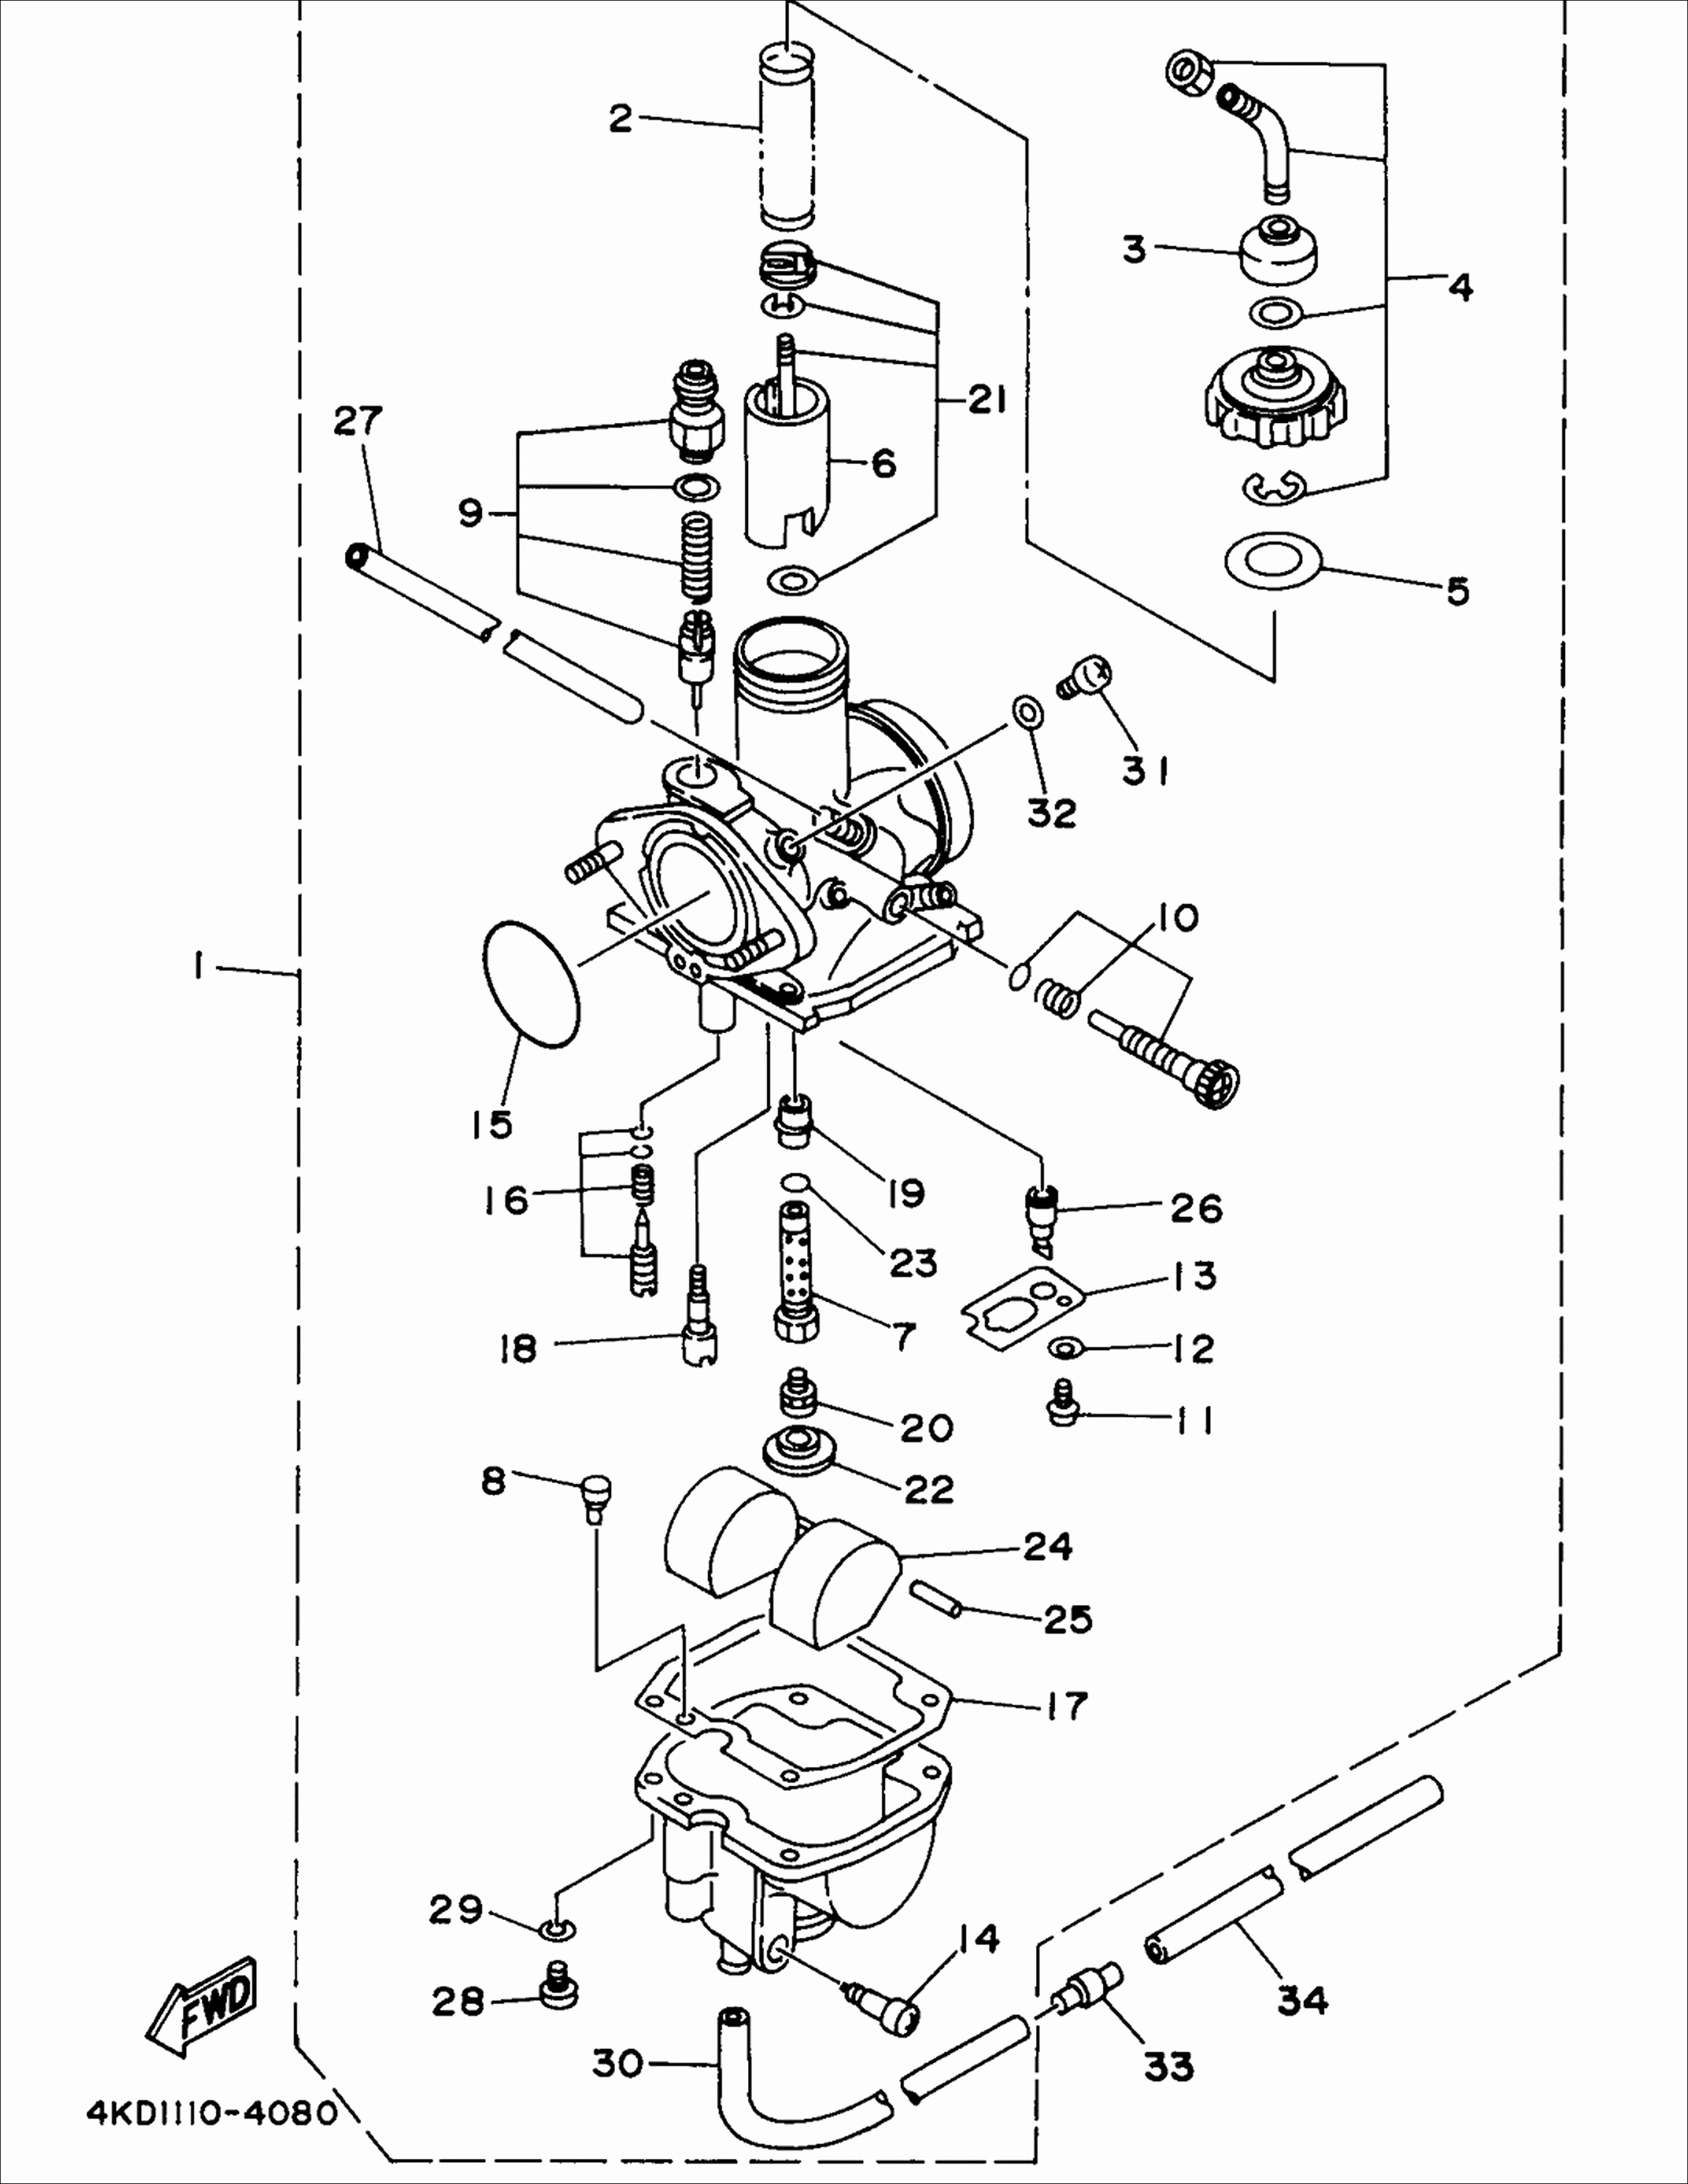 1998 Mirage Fuse Box Wiring Library Mitsubishi Layout 1995 Diagram Automotive Diagrams Rh Mazhai Net 2001 Harness